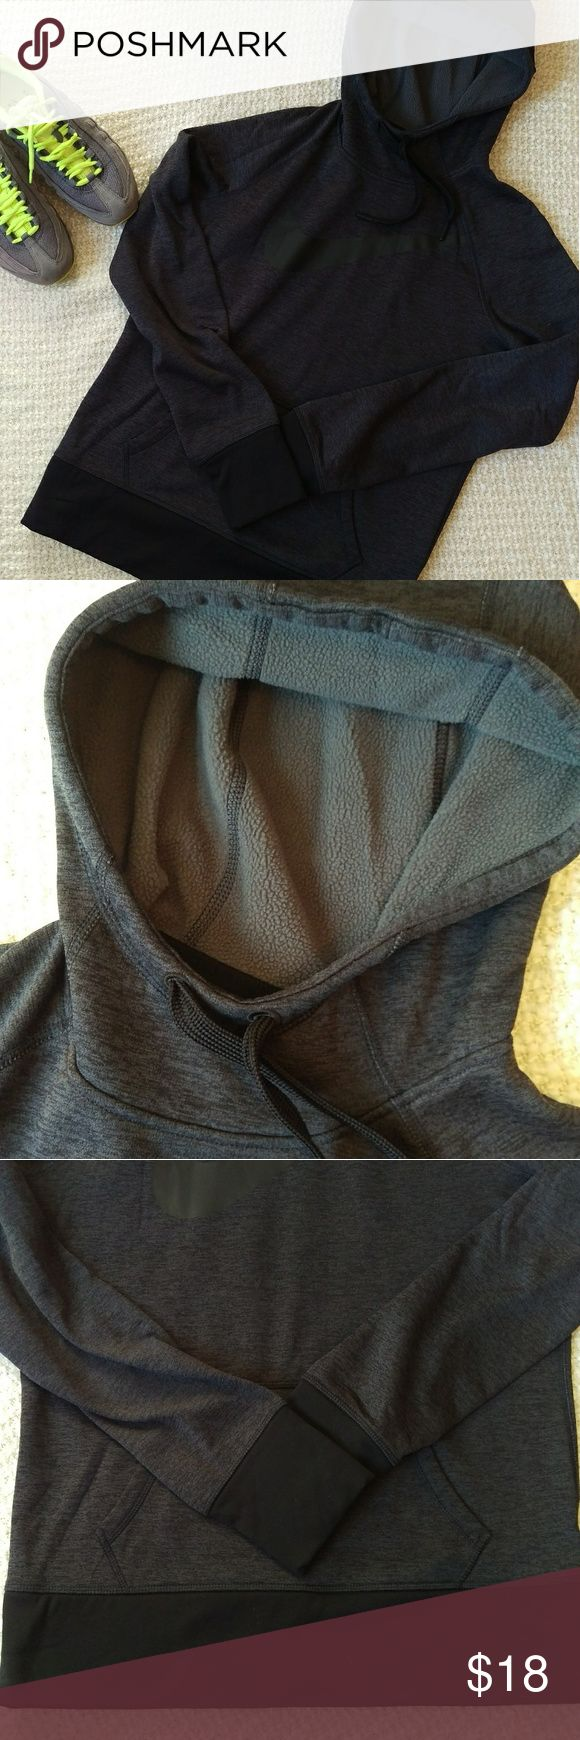 Like New Nike Hoodie Like New Nike Fleece Hoodie  Therma-fit fleece lining. Dark grey, black trim. Attached hood with drawstring and kangaroo pocket. Little thumb slits on sleeves to tuck in your hand. It was a gift, never worn.  Please ask any questions. Sold as is. Nike Tops Sweatshirts & Hoodies